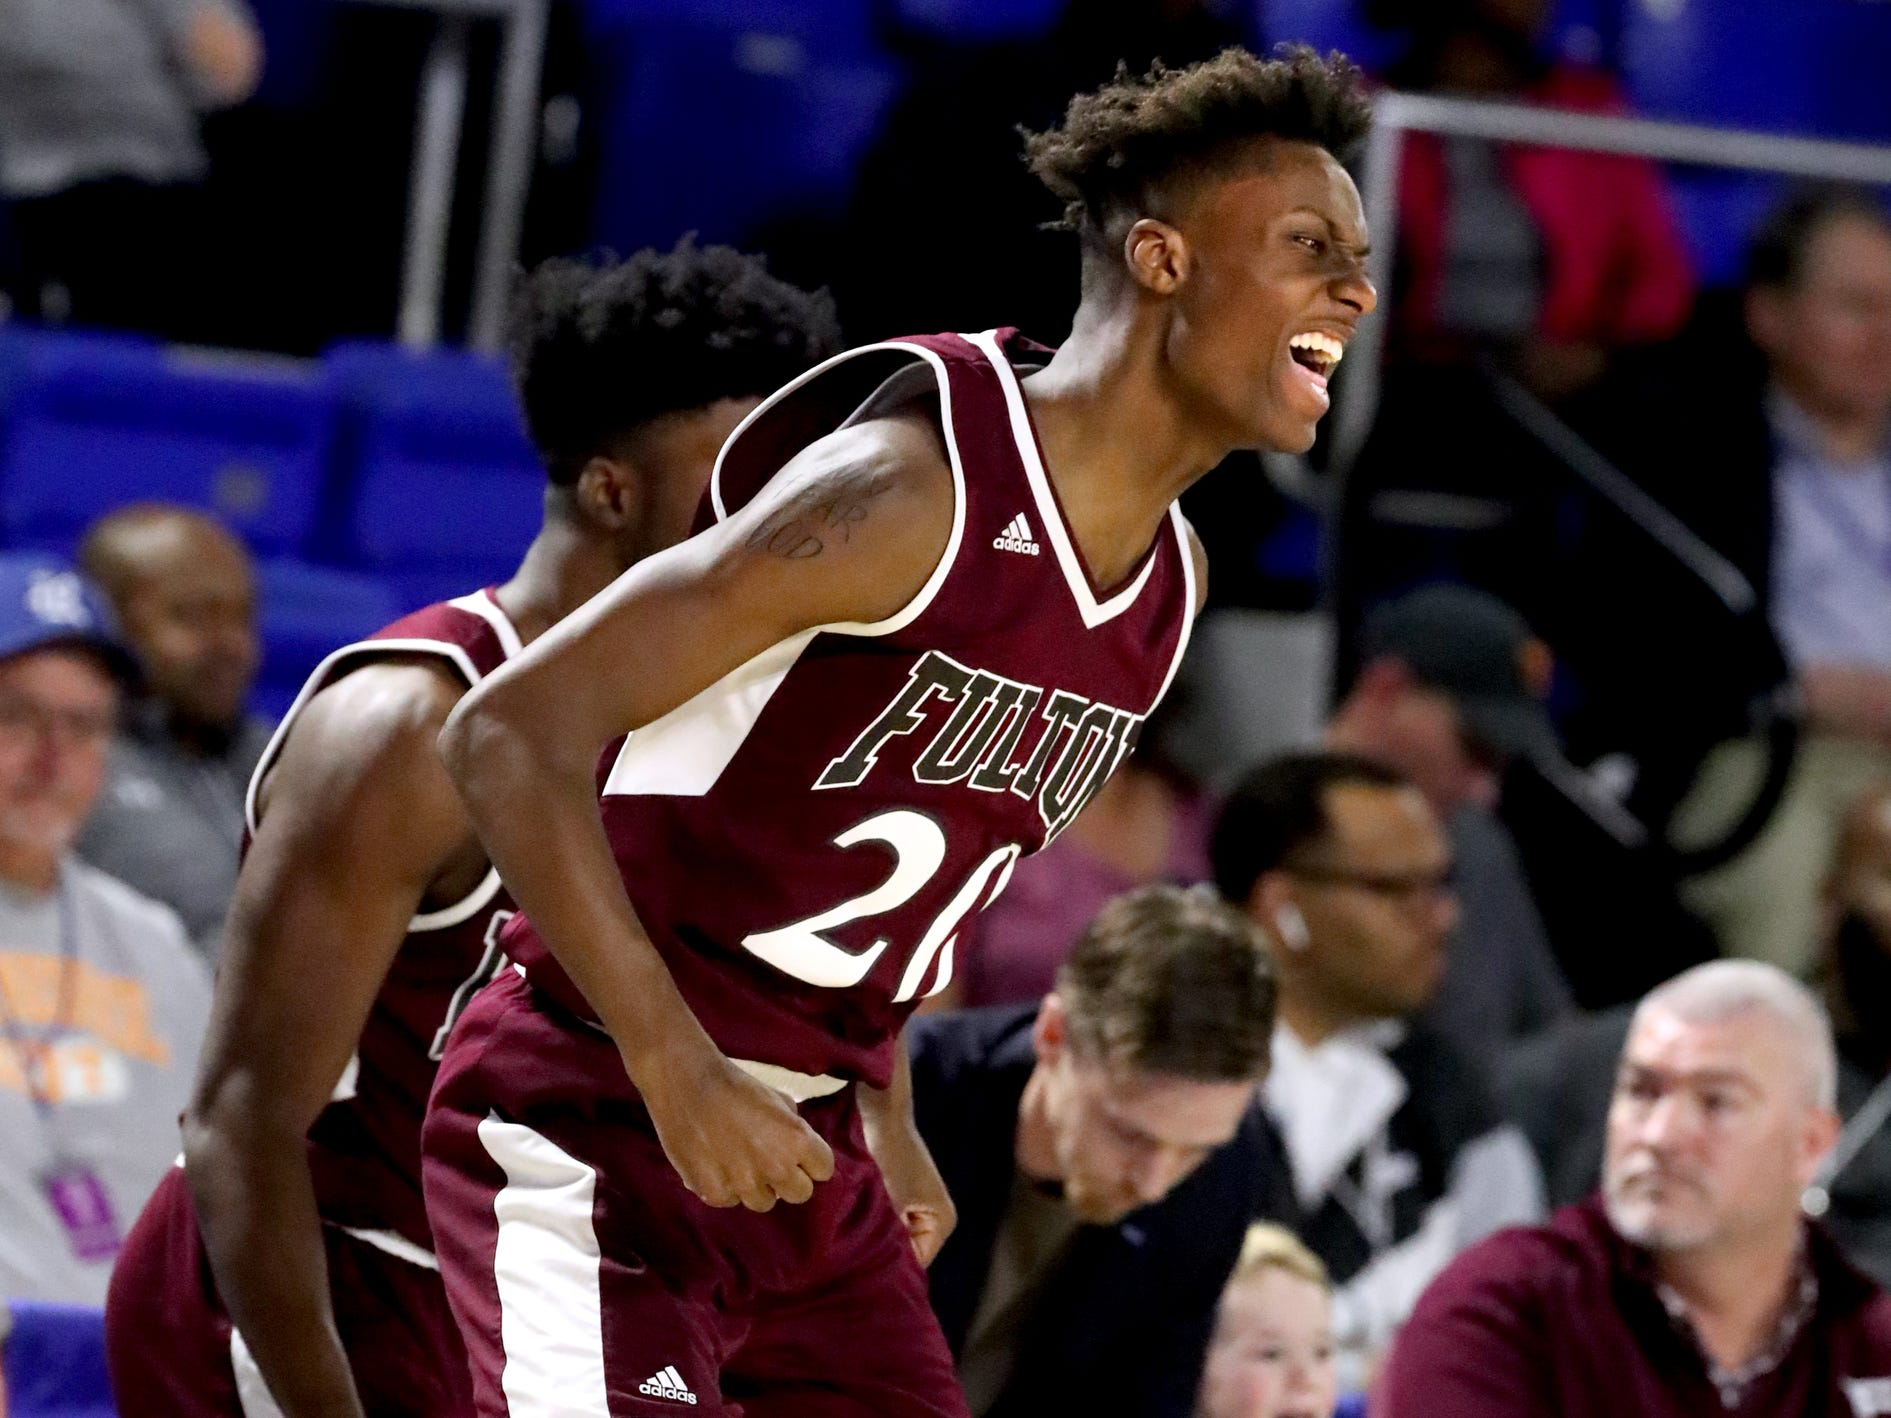 Fulton's Domenic Holland (20) celebrates being ahead of Mitchell during a time-out during overtime in the quarterfinal round of the TSSAA Class AA Boys State Tournament, on Wednesday, March 13, 2019, at Murphy Center in Murfreesboro, Tenn.